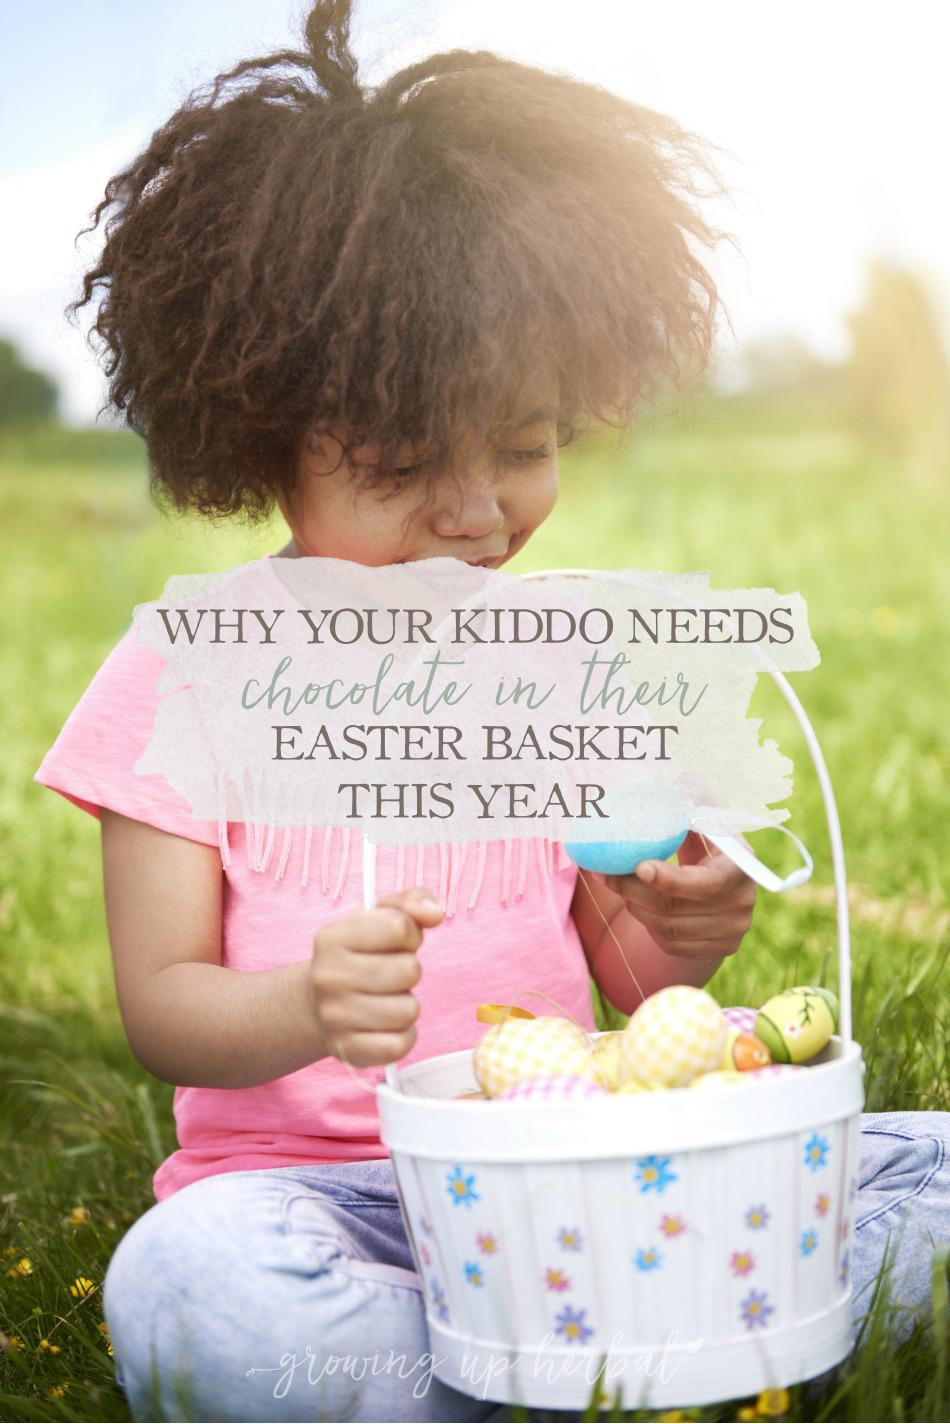 Why Your Kiddo Needs Chocolate In Their Easter Basket This Year